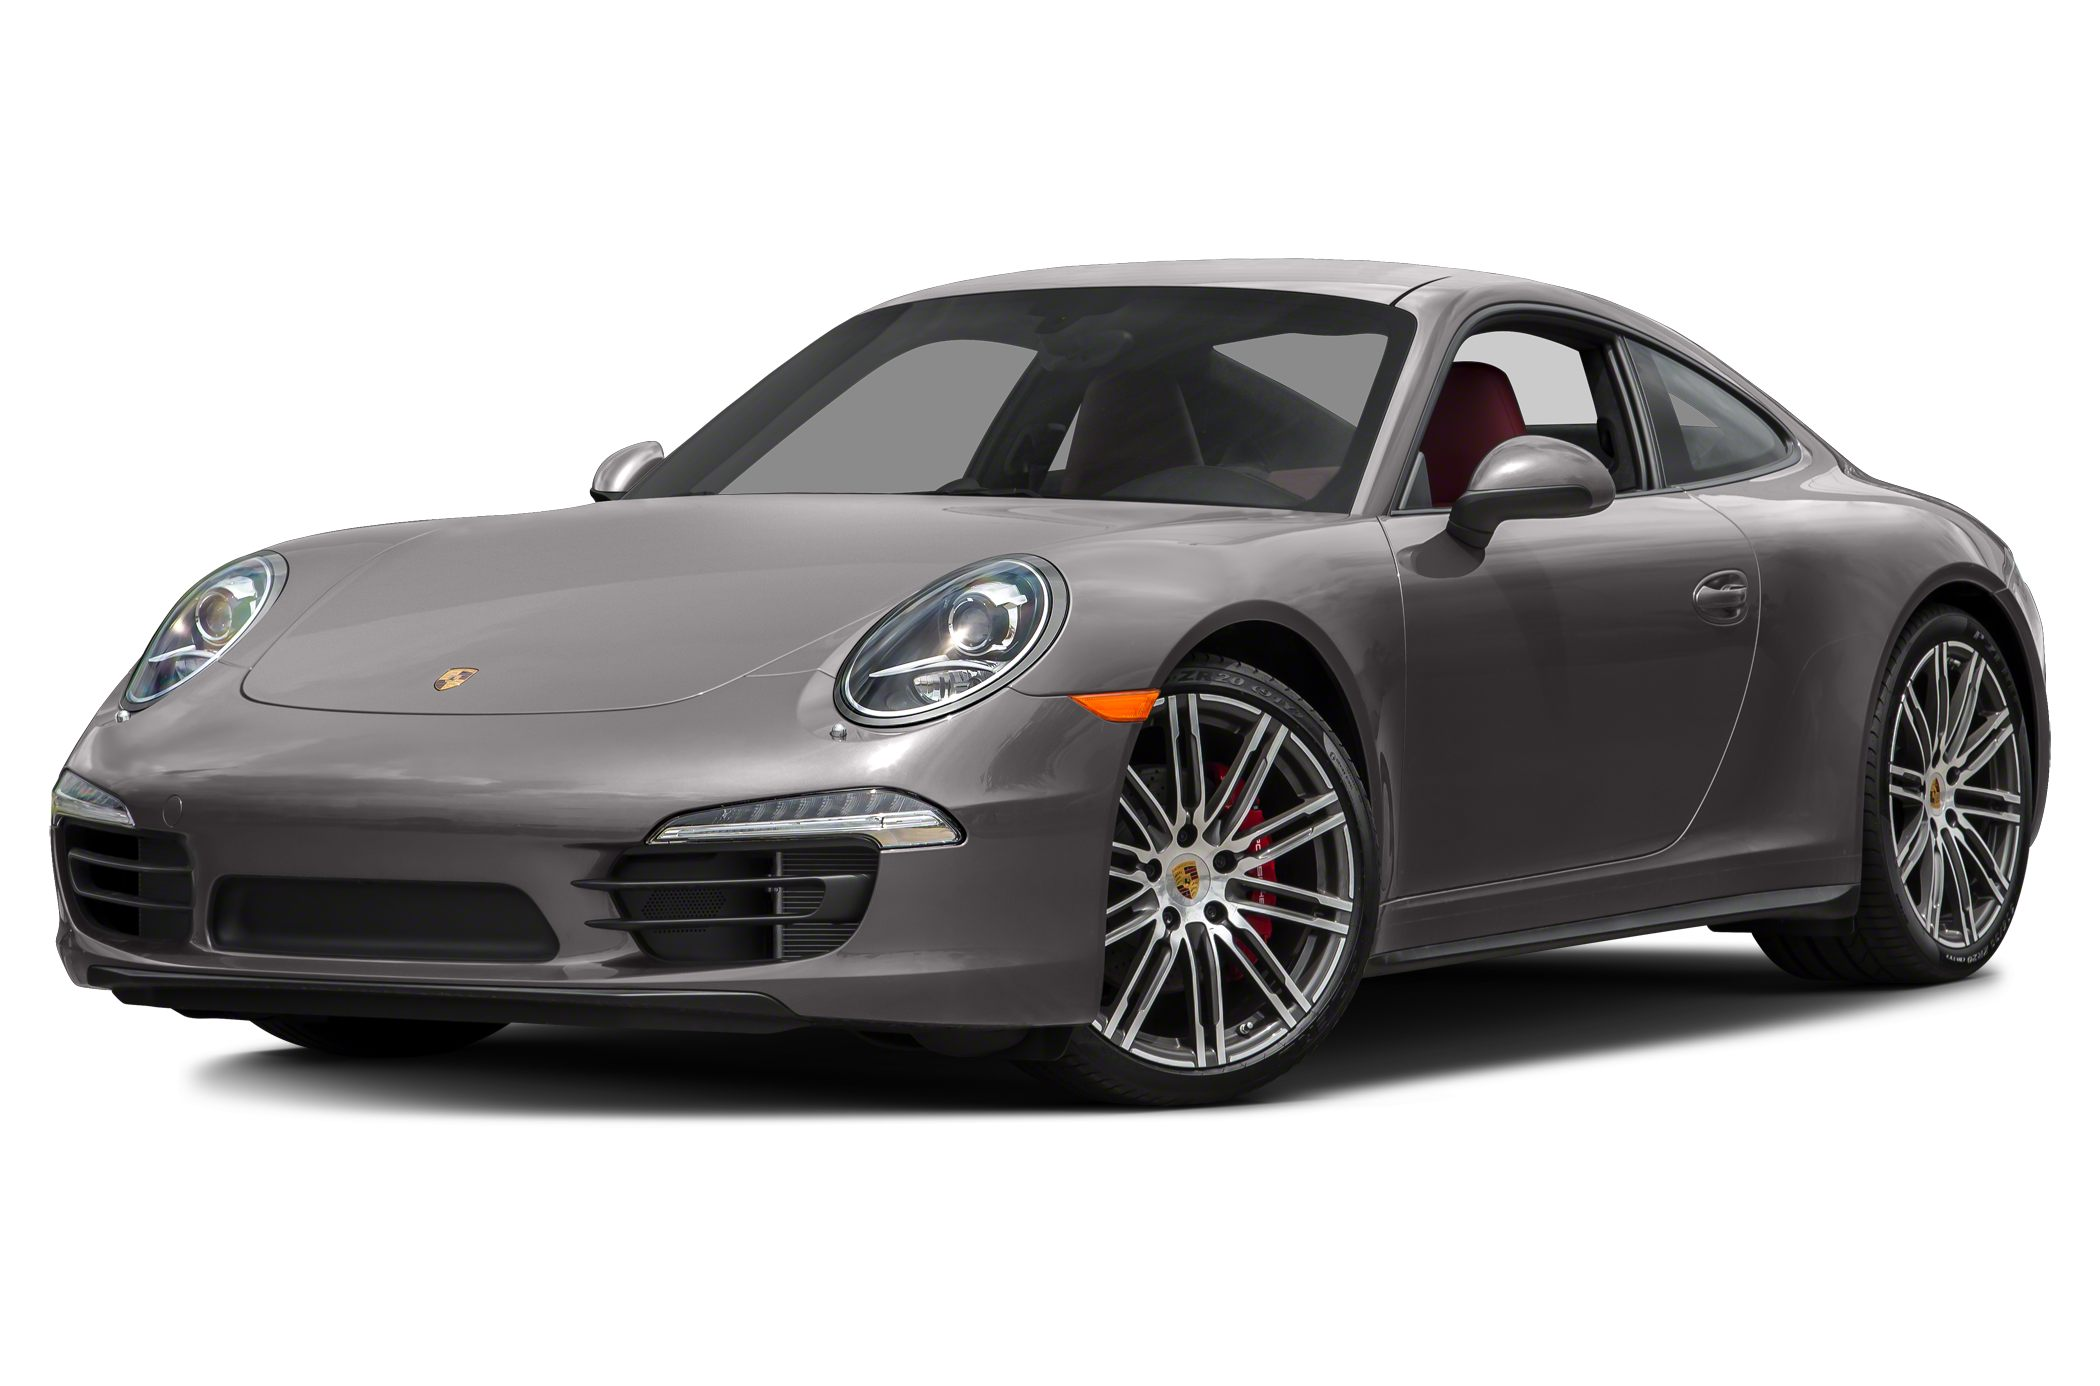 2015 Porsche 911 Carrera 4S Coupe for sale in Baltimore for $129,820 with 14 miles